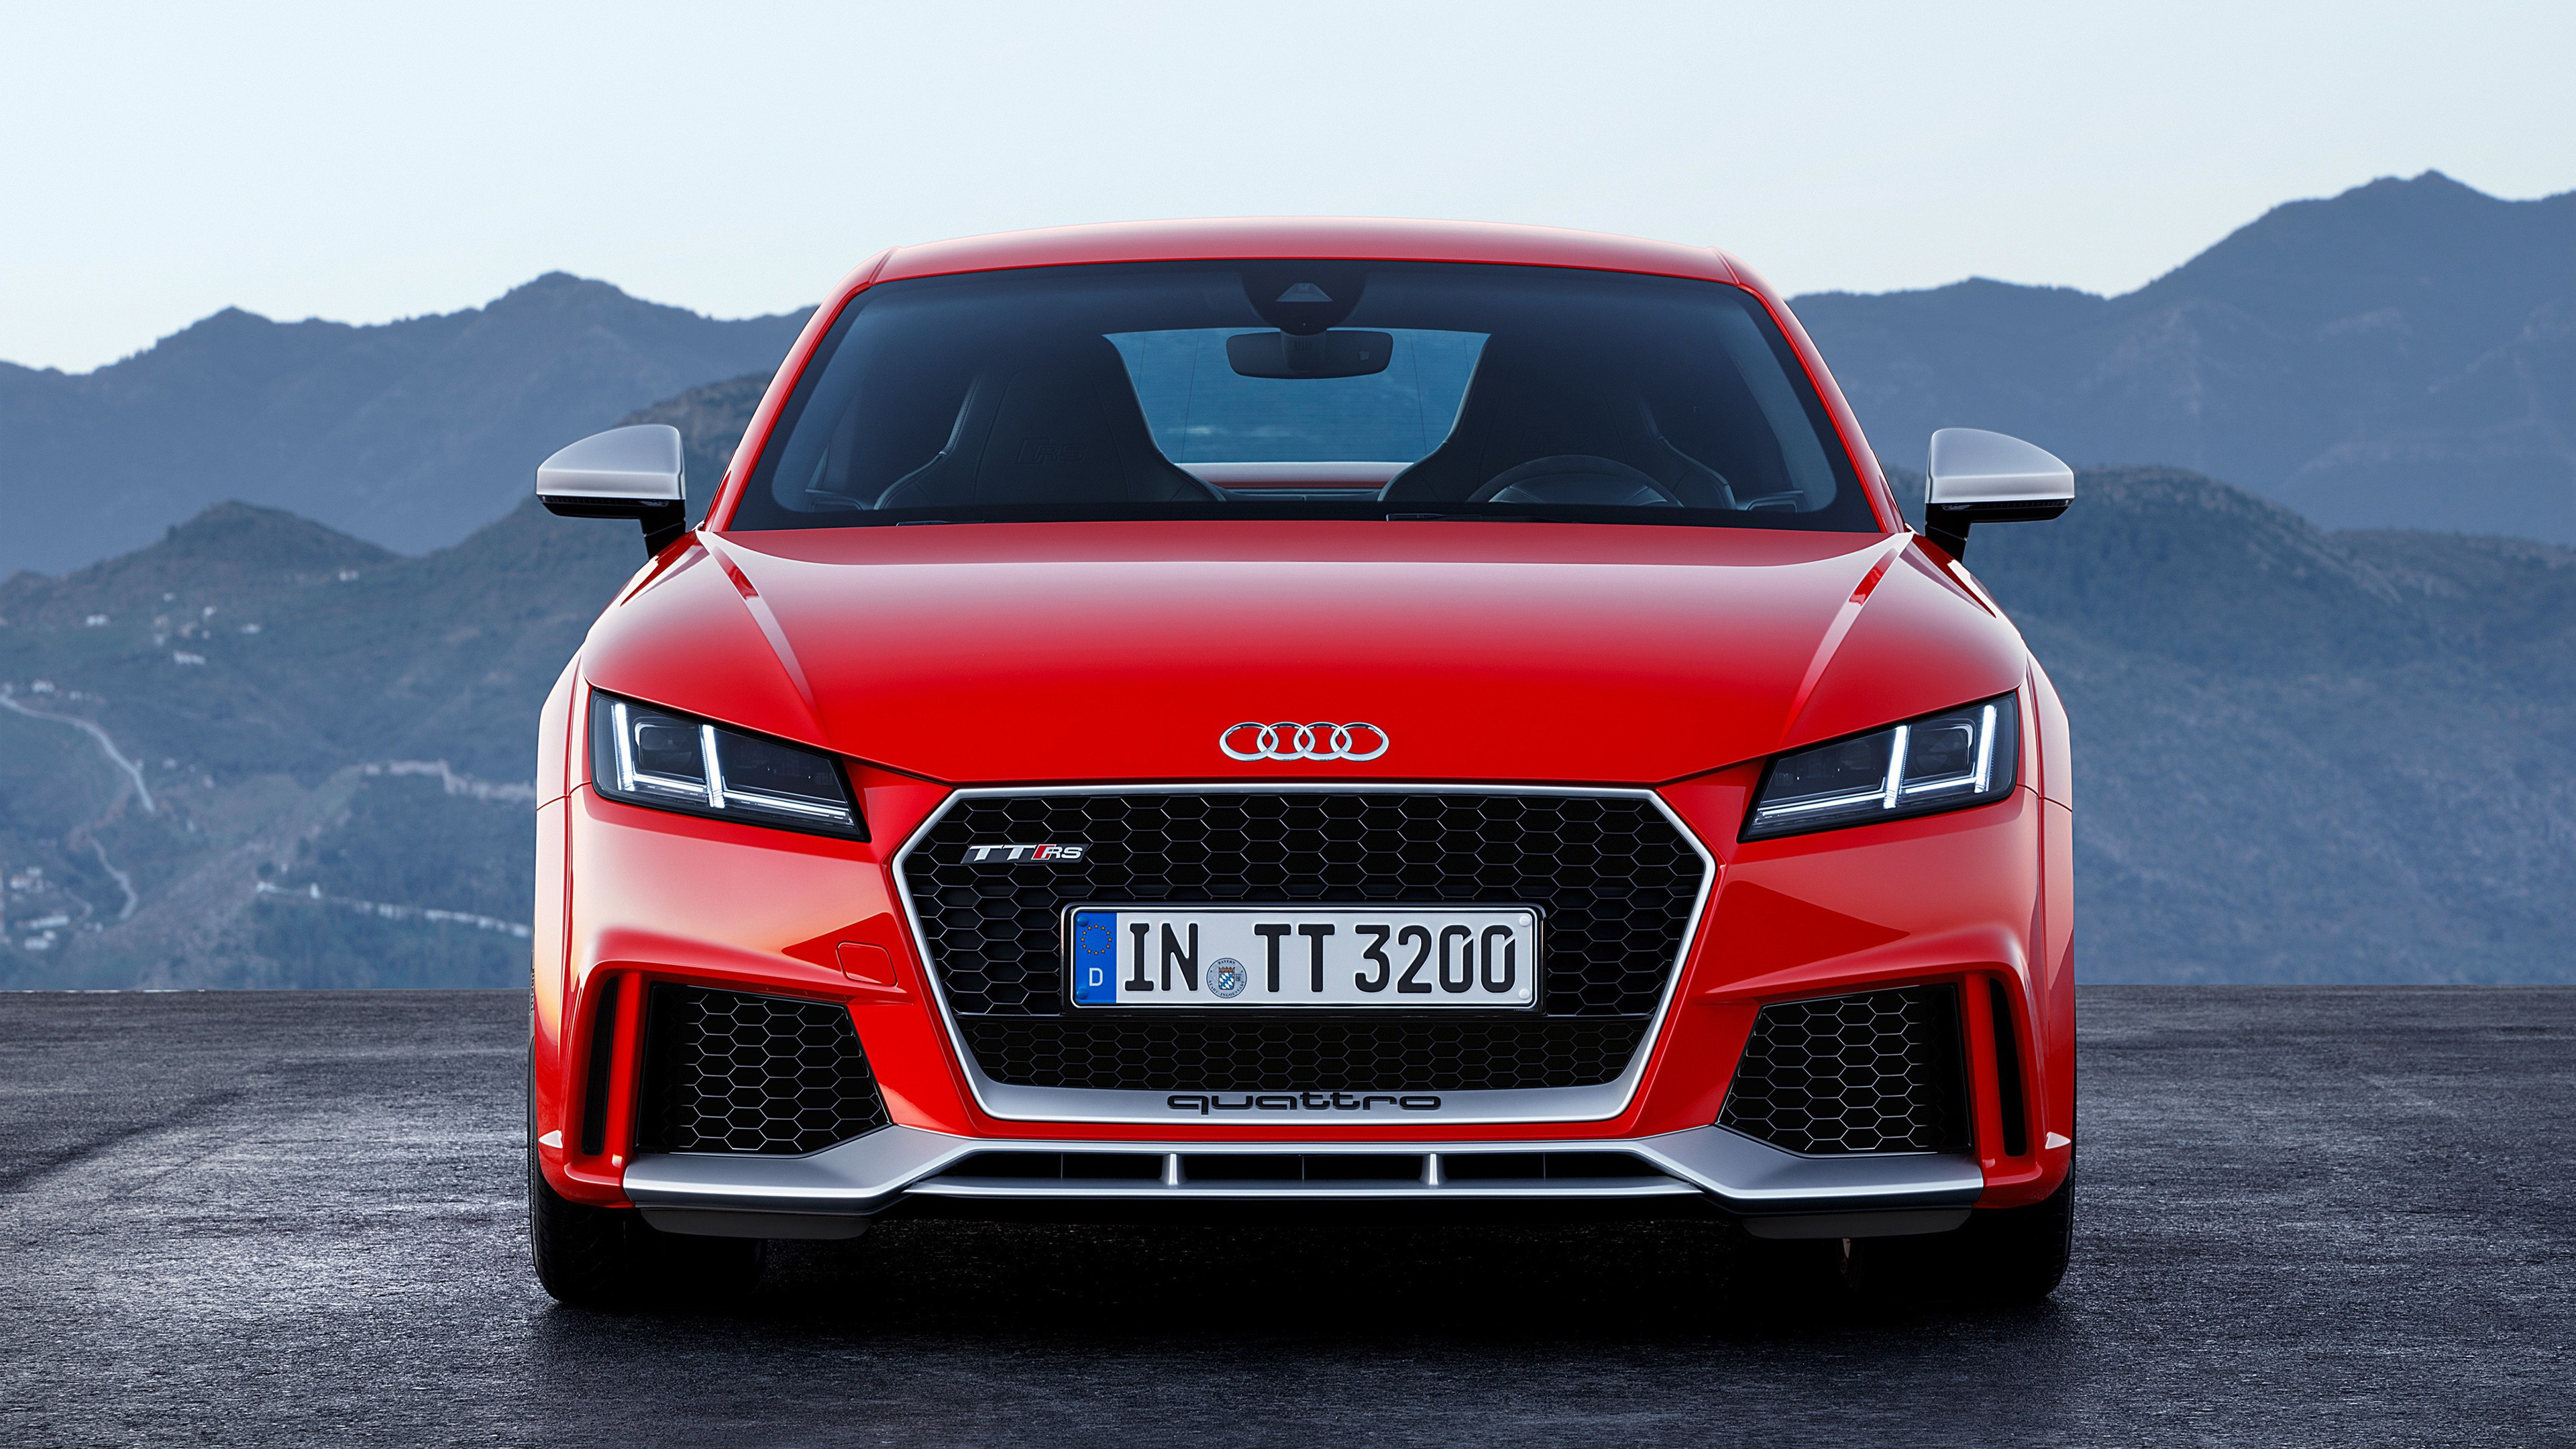 2017 Audi TT RS Coupe Wallpaper | HD Car Wallpapers | ID #6486